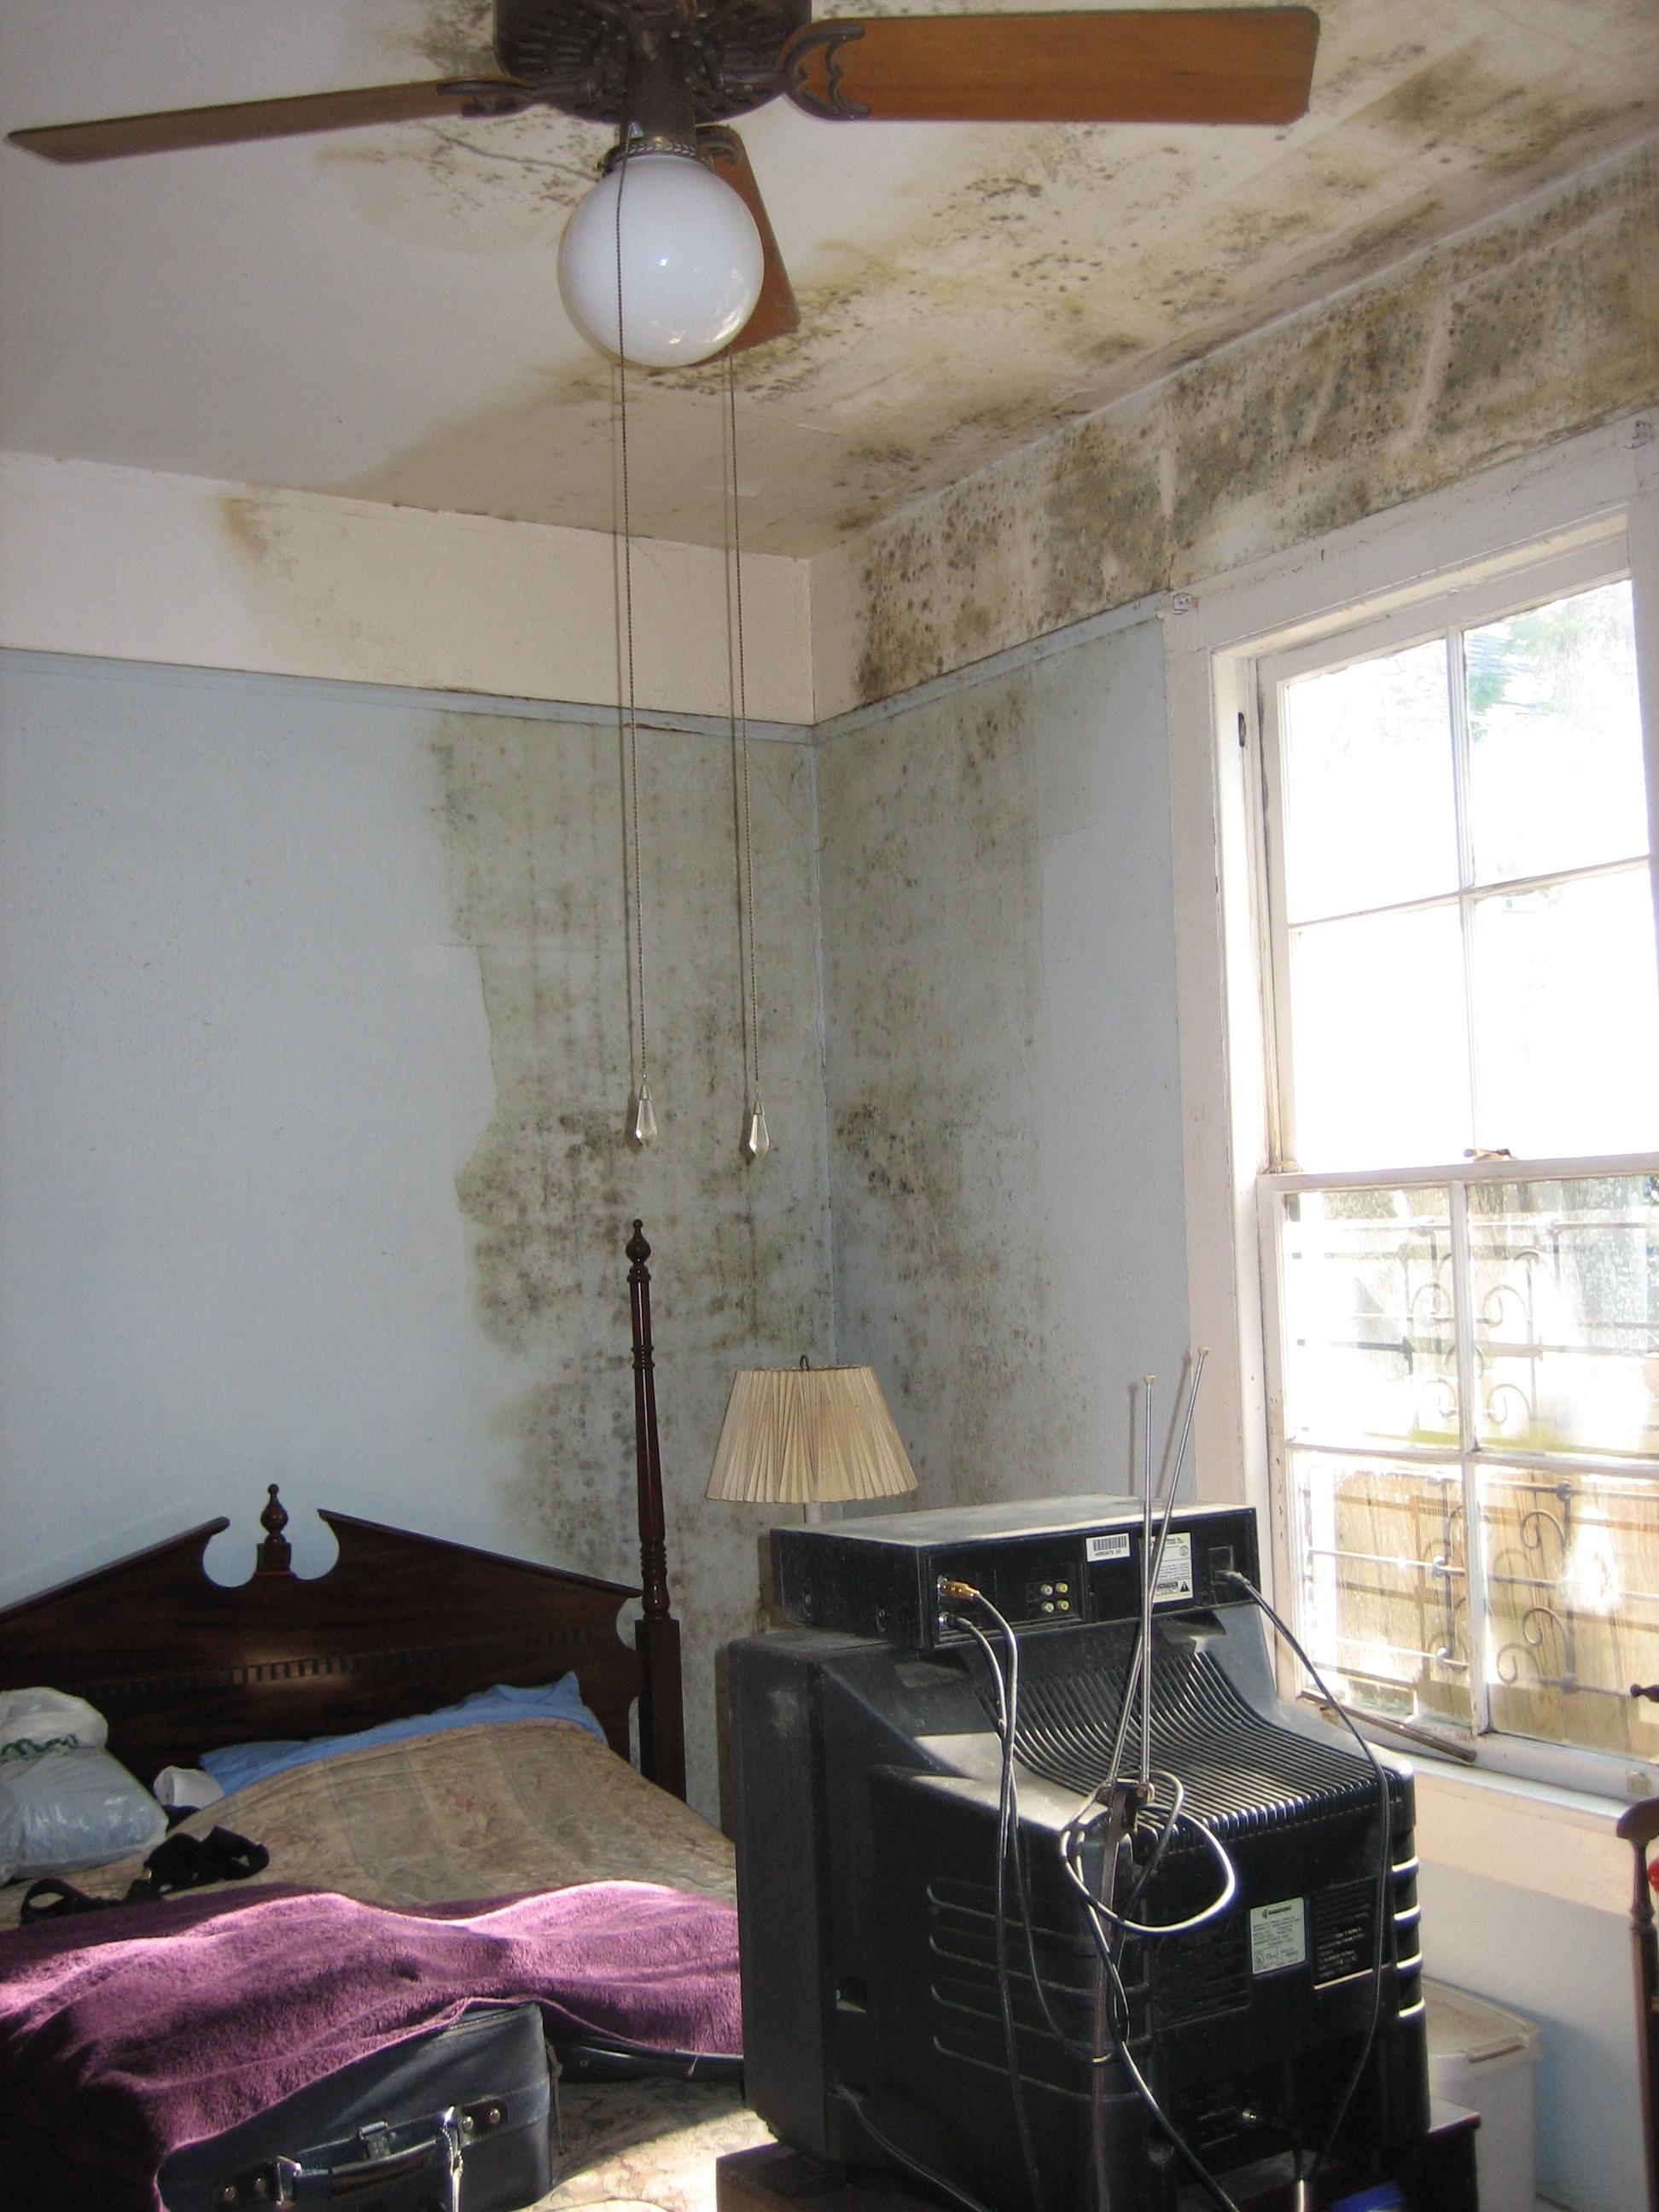 Bedroom With Mold On Wall And Ceiling